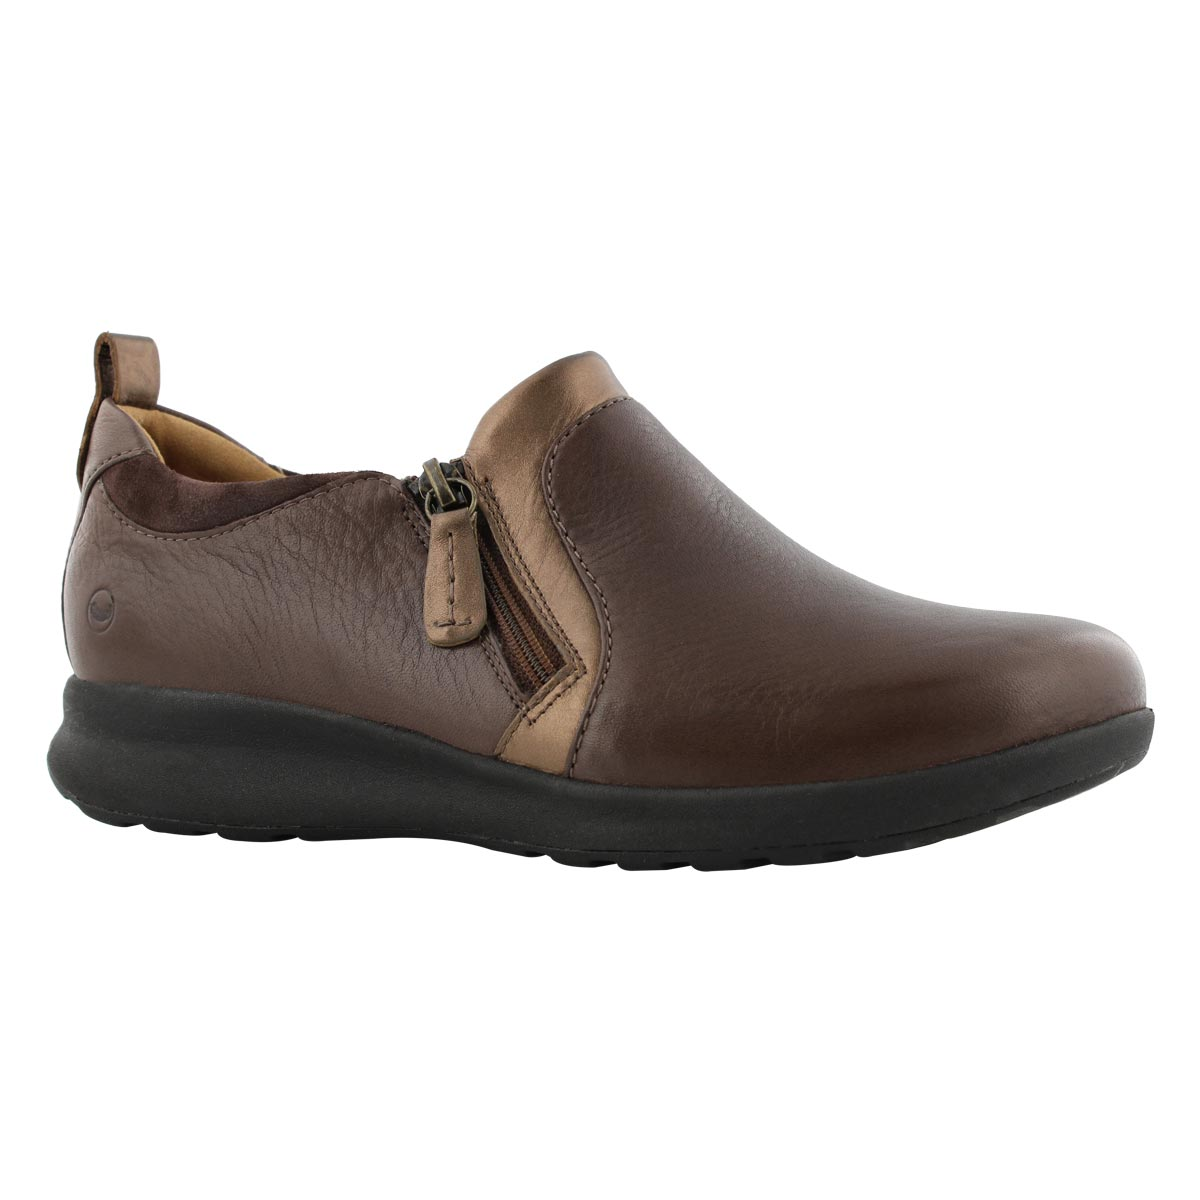 Lds Un Adorn Zip dark brown casual shoe